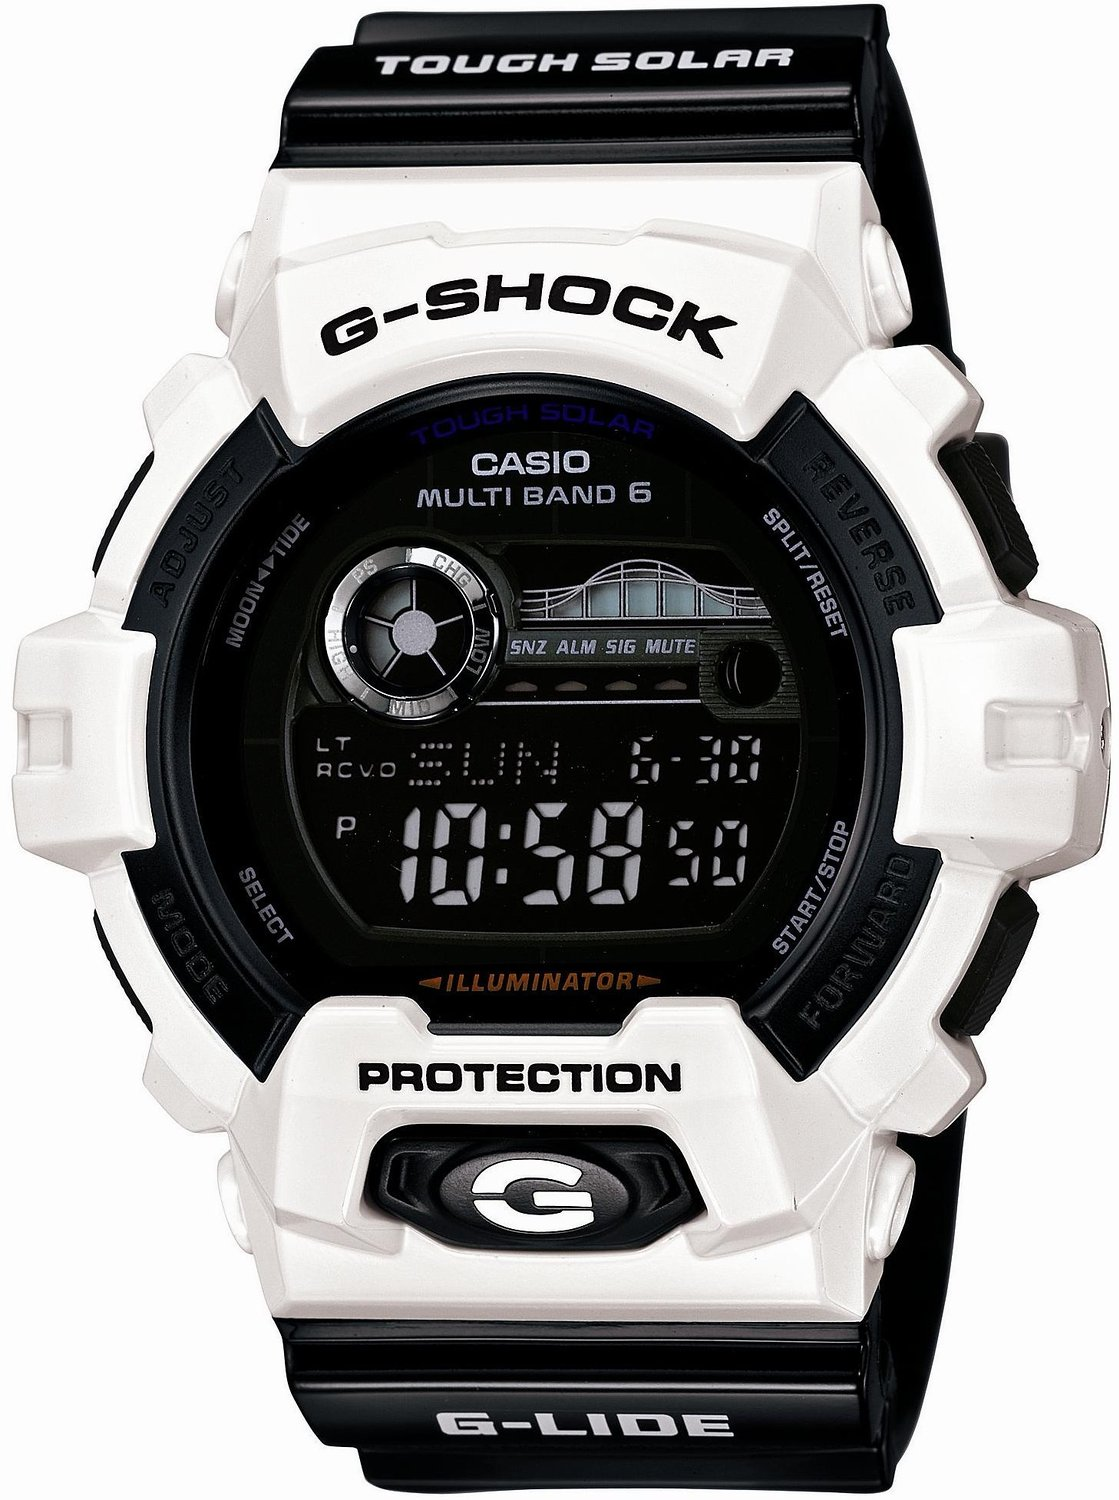 Casio GWX-8900B-7JF G-SHOCK G-GLIDE Digital Multiband 6 Tough Solar Radio Controlled Watch